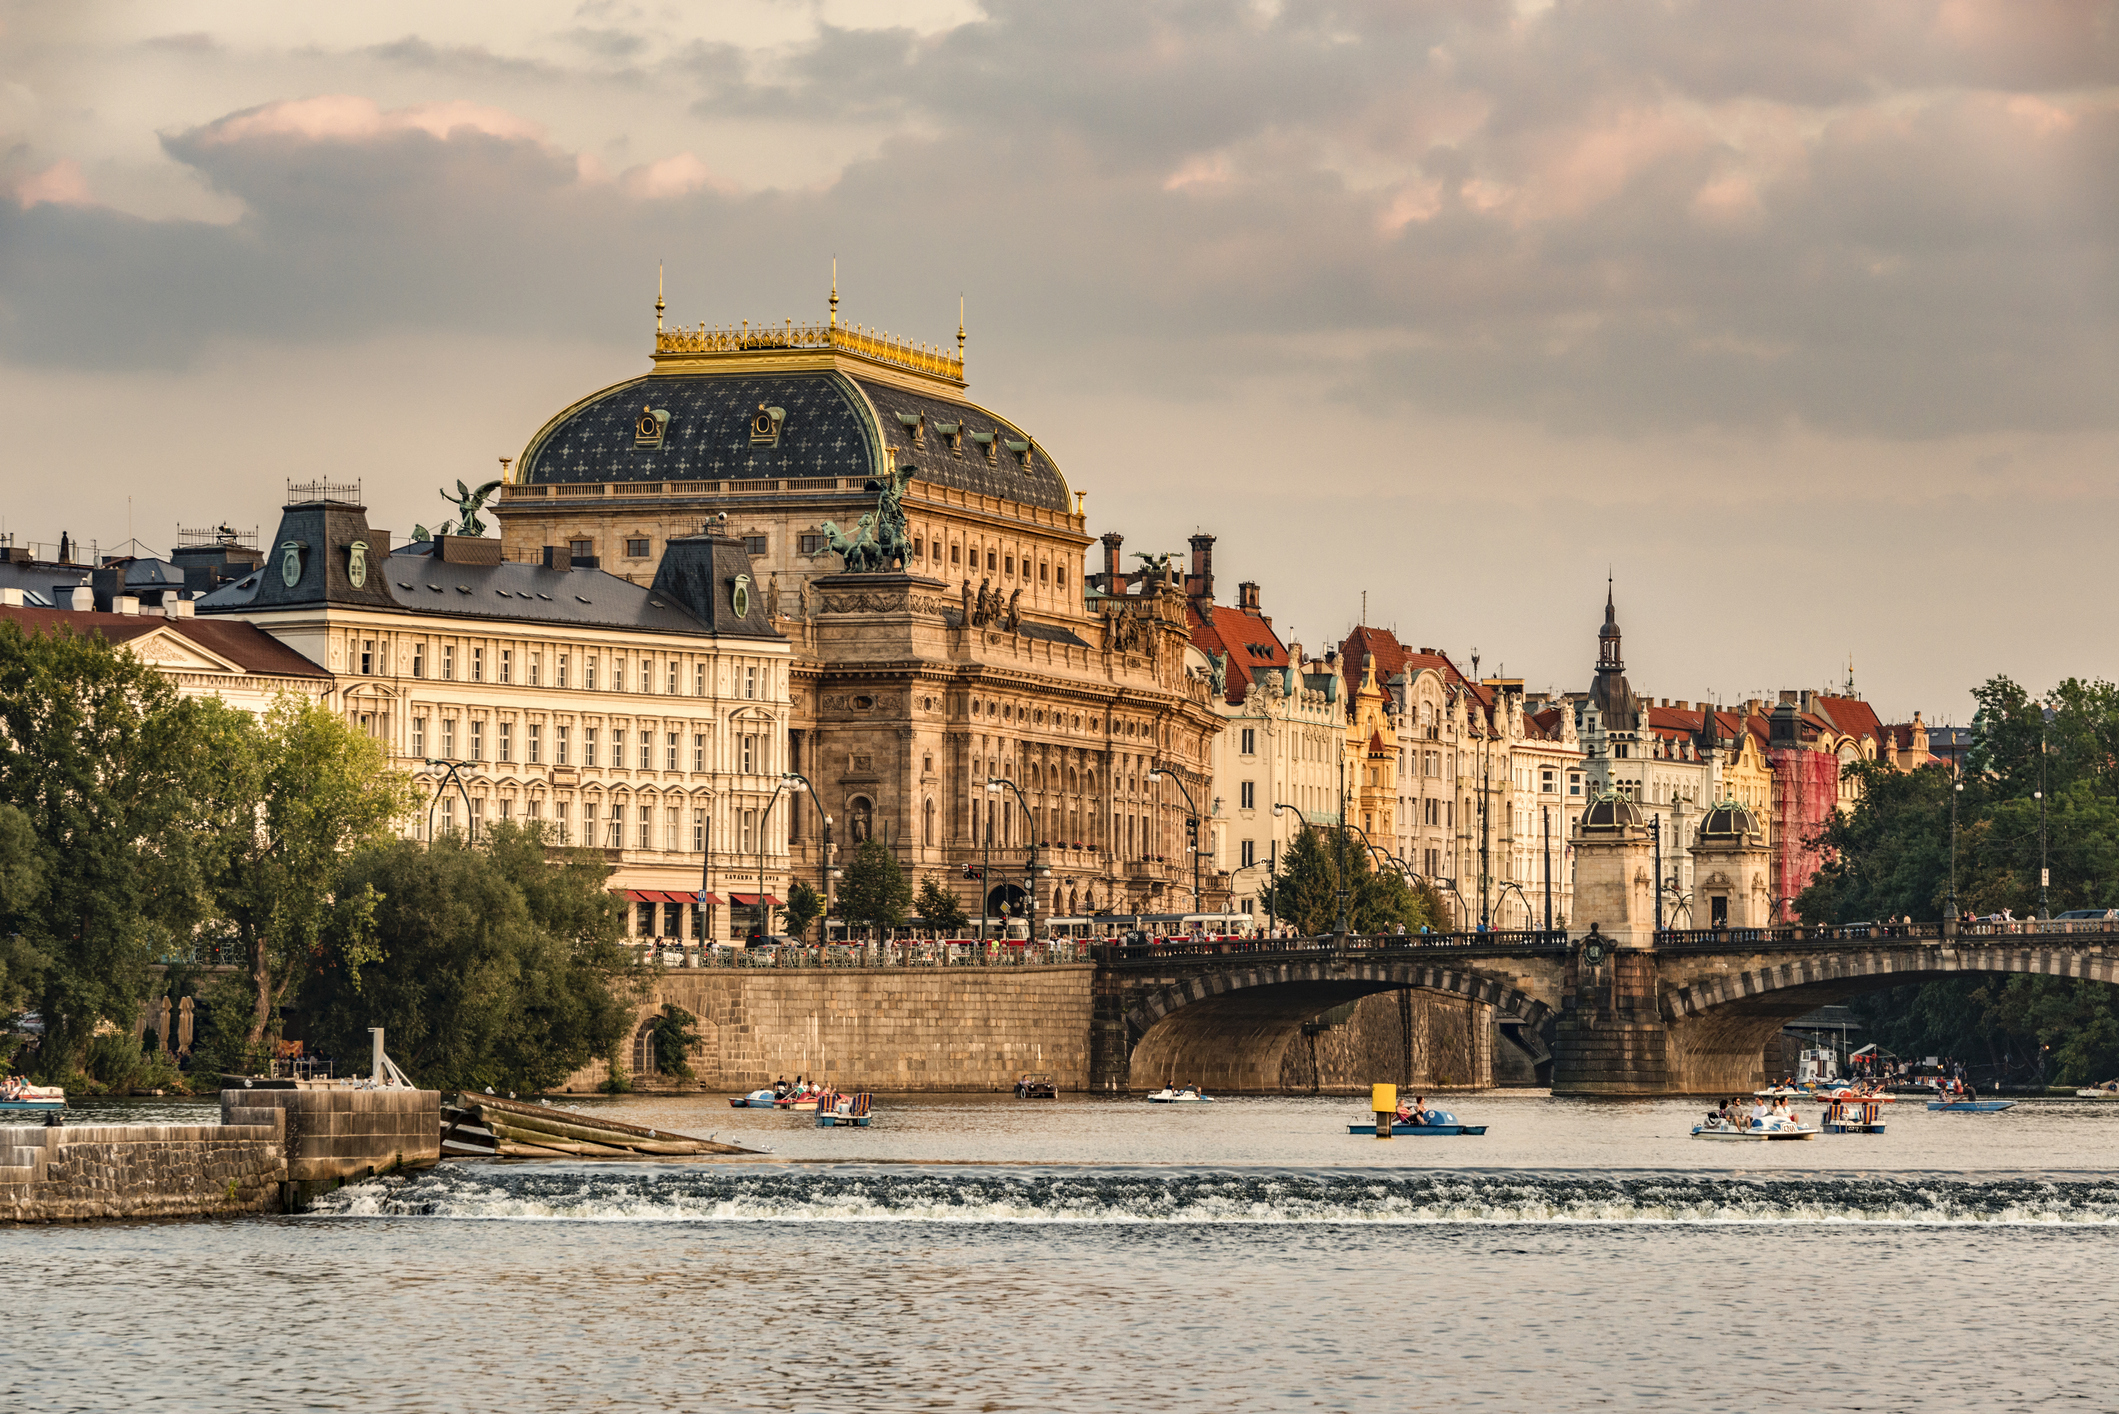 The National Theatre: Prague's pride, a gift from the Czechs to themselves